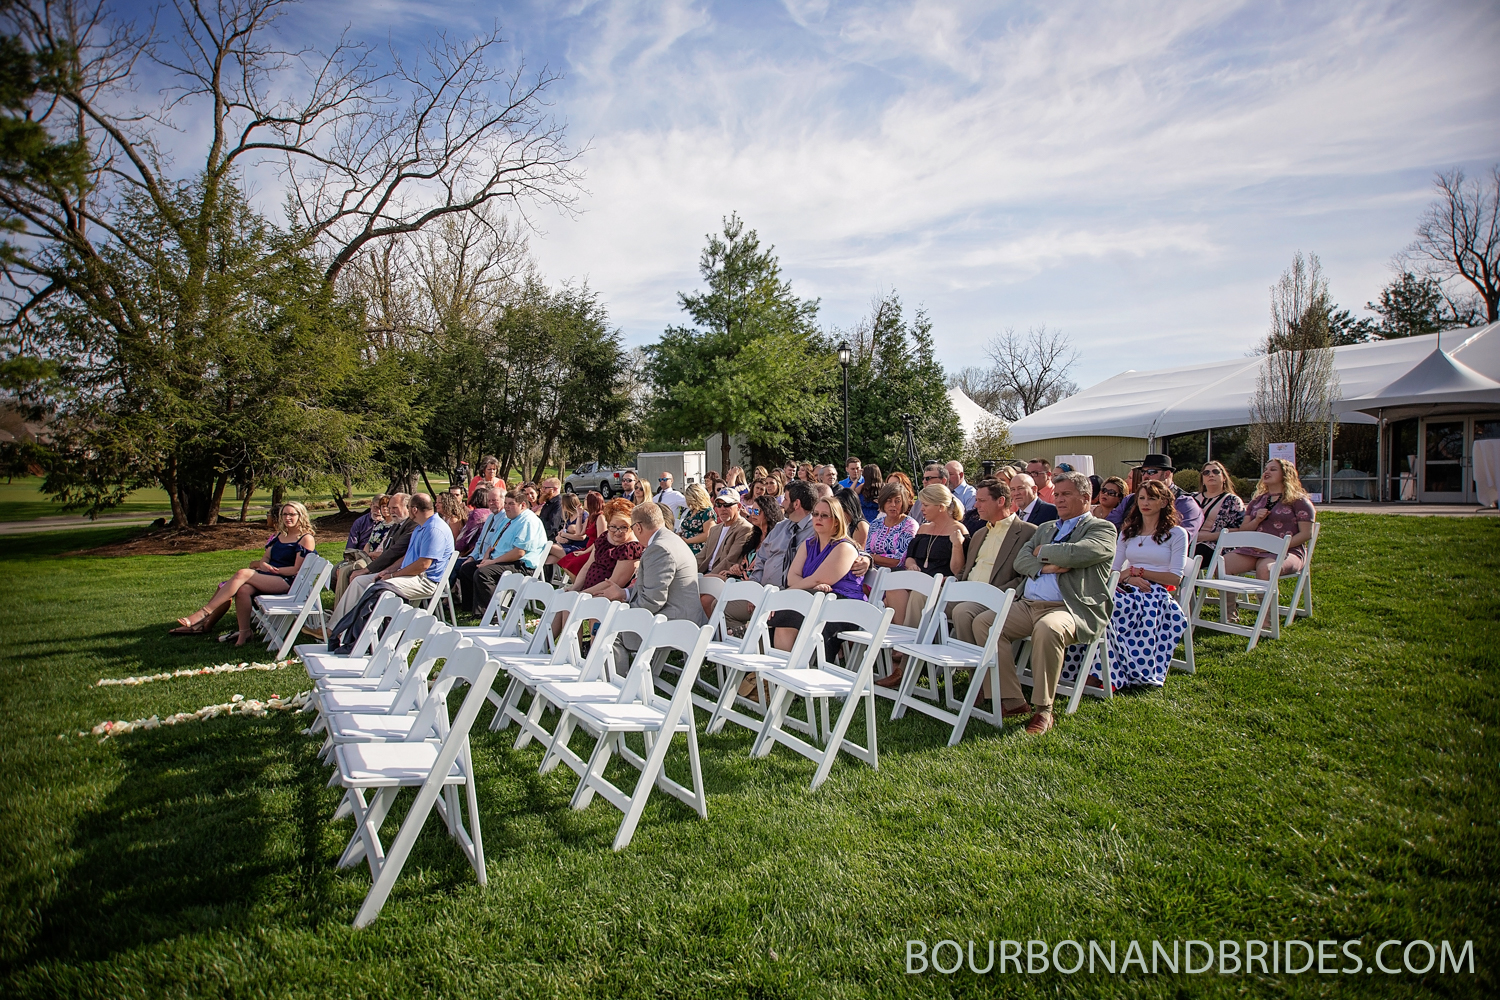 Marriott-Griffin-Gate-Ceremony-wedding-1.jpg